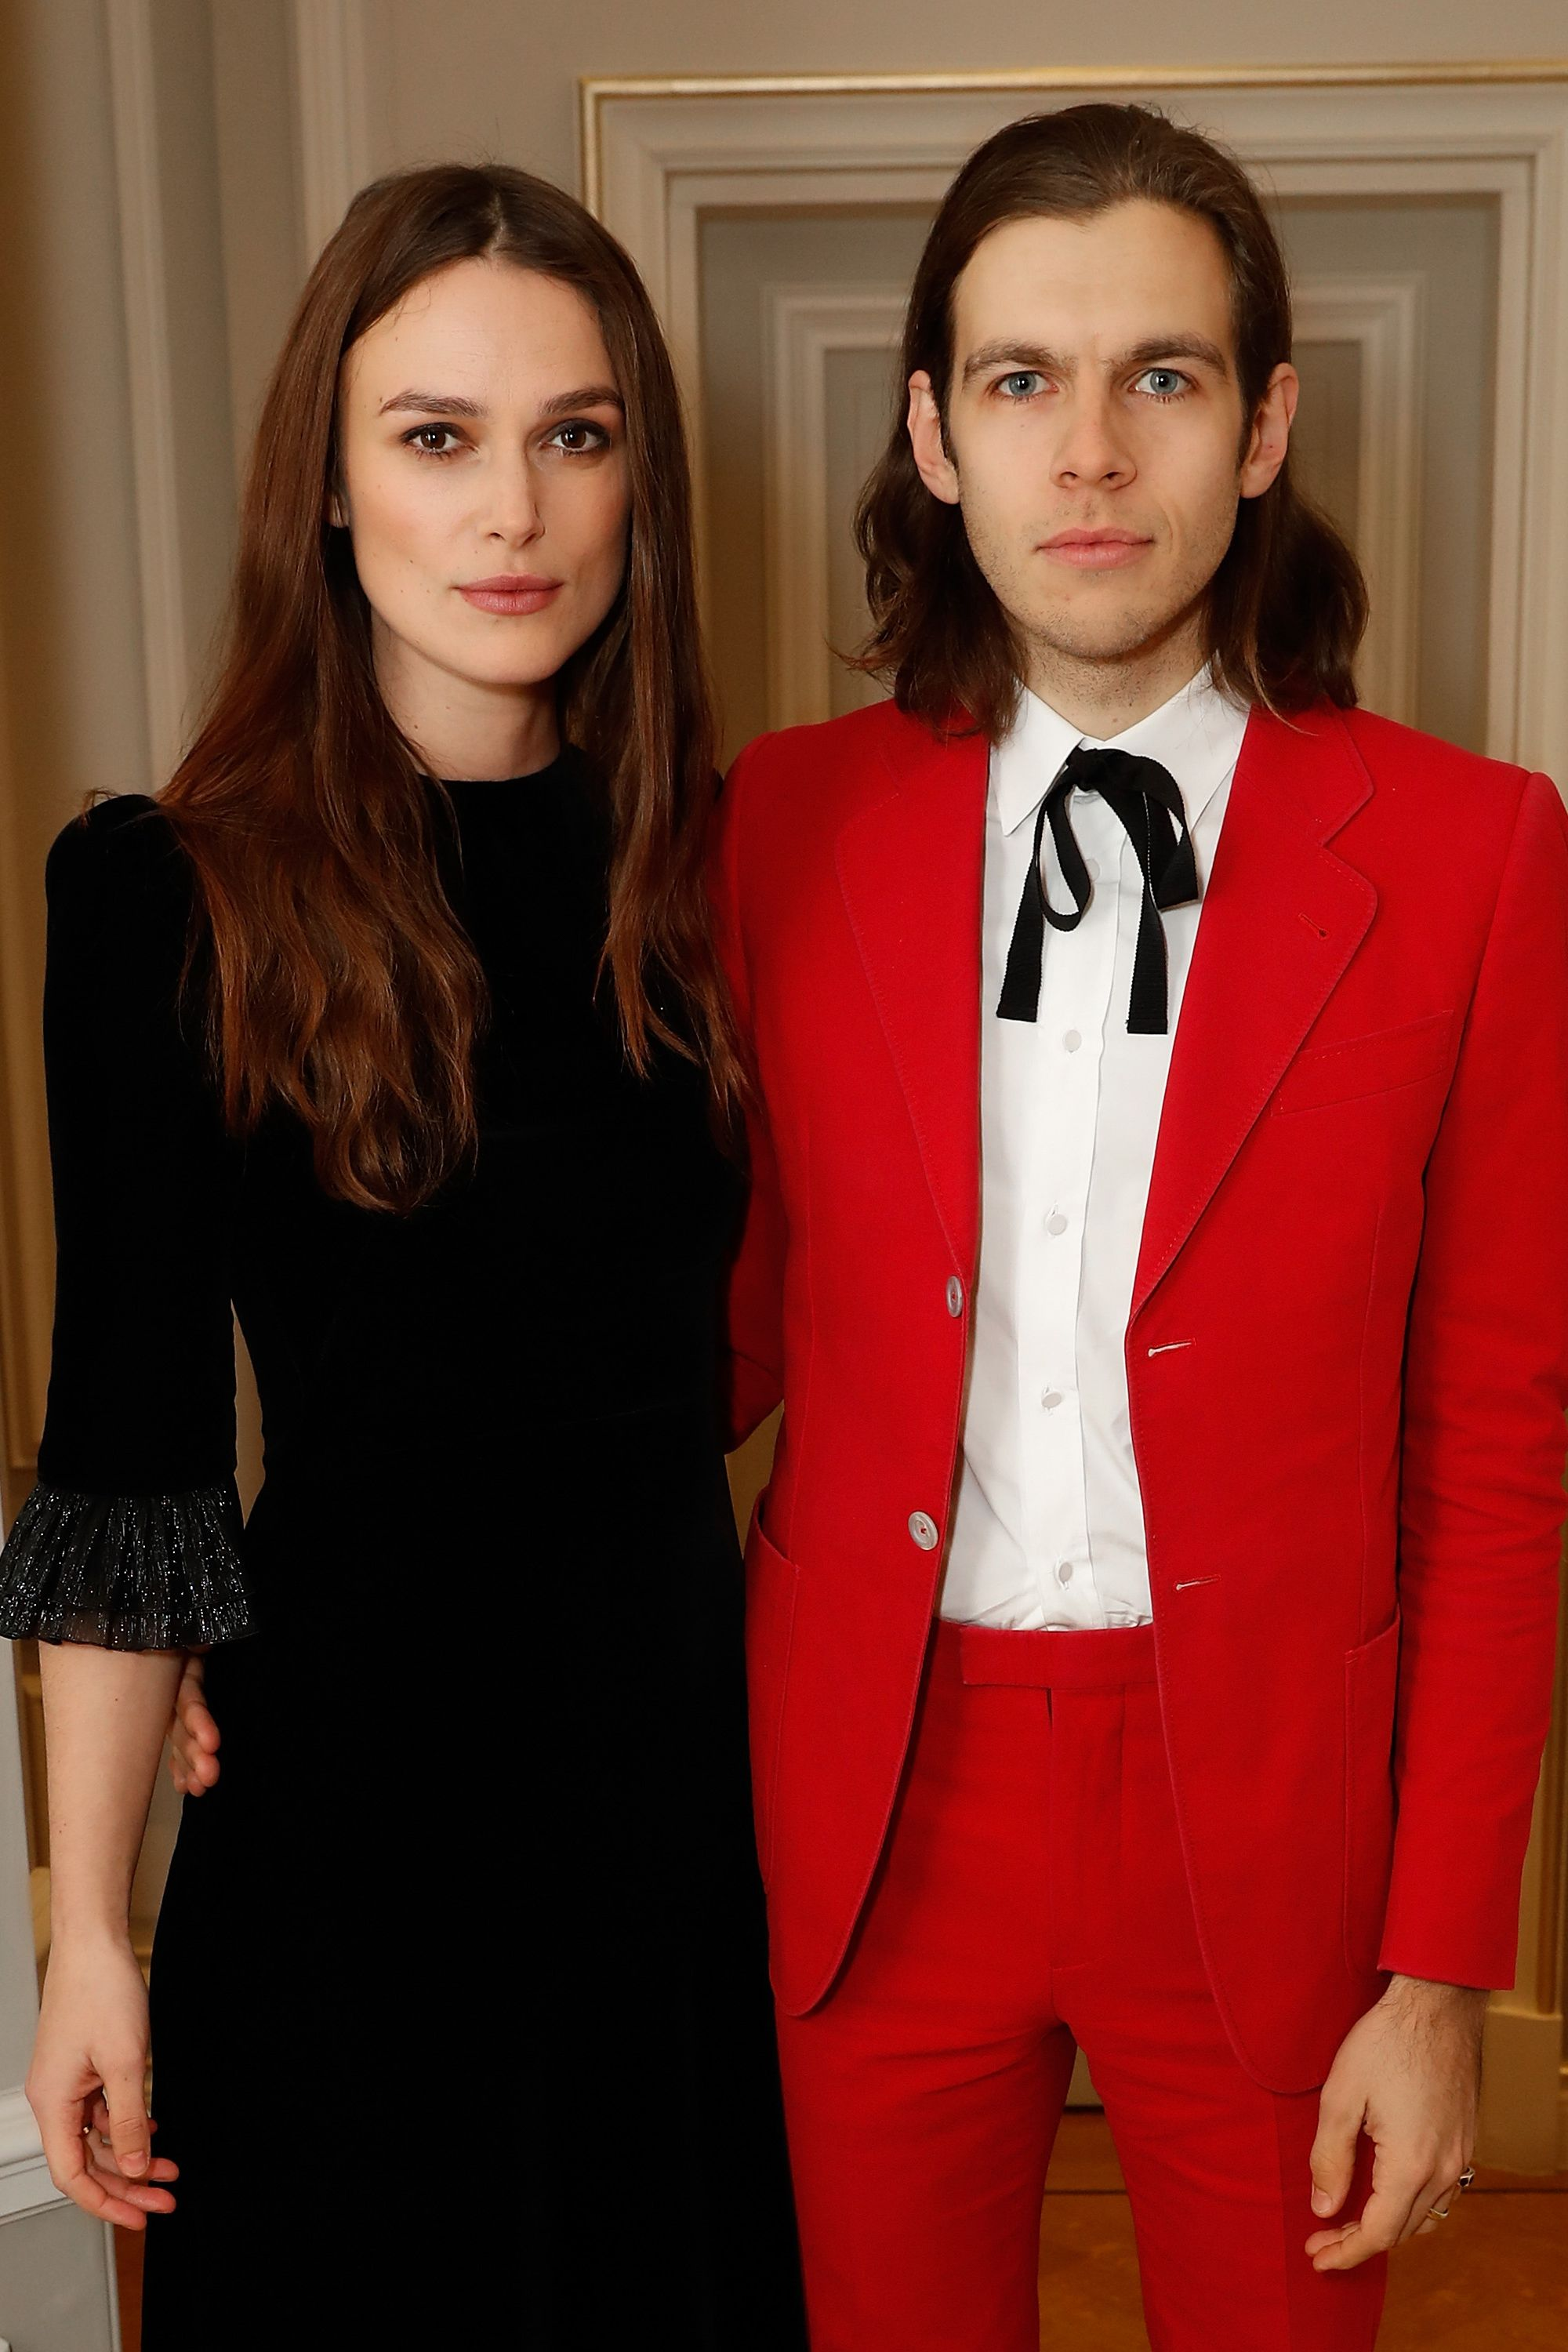 Kiera Knightley and James Righton The Pirates of the Caribbean actress and her musician husband have a similar face shape and strong eyebrows. When you pair that with long, brown hair they look even more alike.